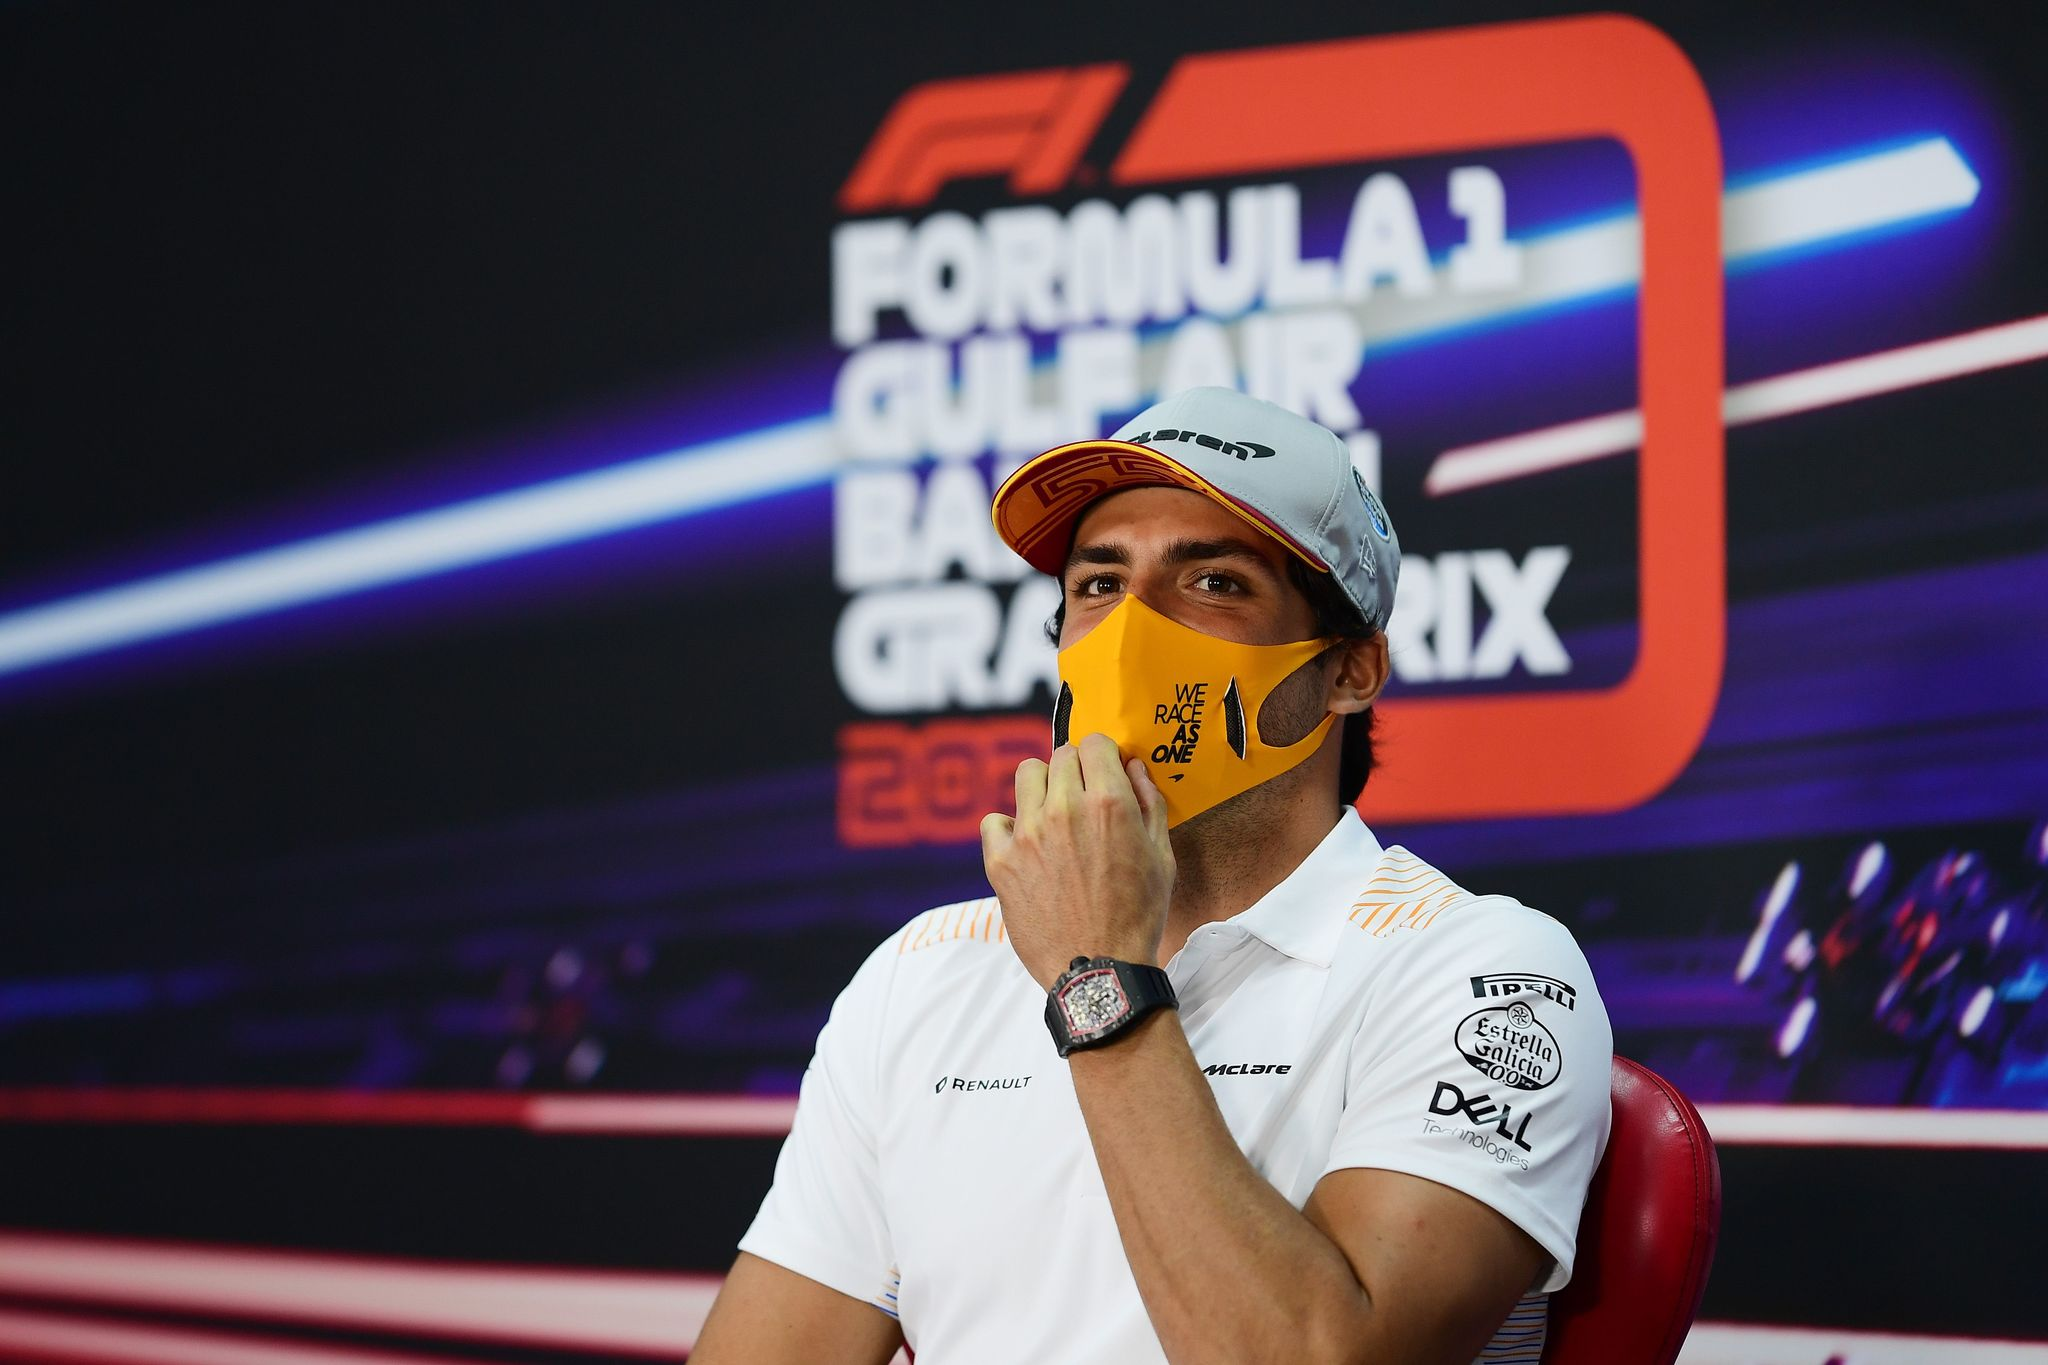 """McLarens Spanish driver lt;HIT gt;Carlos lt;/HIT gt; lt;HIT gt;Sainz lt;/HIT gt; Jr adjusts his mask during the presser ahead of the Bahrain Formula One Grand Prix at the Bahrain International Circuit in the city of Sakhir on November 26, 2020. (Photo by Mario RENZI / FIA / AFP) / RESTRICTED TO EDITORIAL USE - MANDATORY CREDIT """"AFP PHOTO / FIA / MARIO RENZI- NO MARKETING NO ADVERTISING CAMPAIGNS - DISTRIBUTED AS A SERVICE TO CLIENTS"""